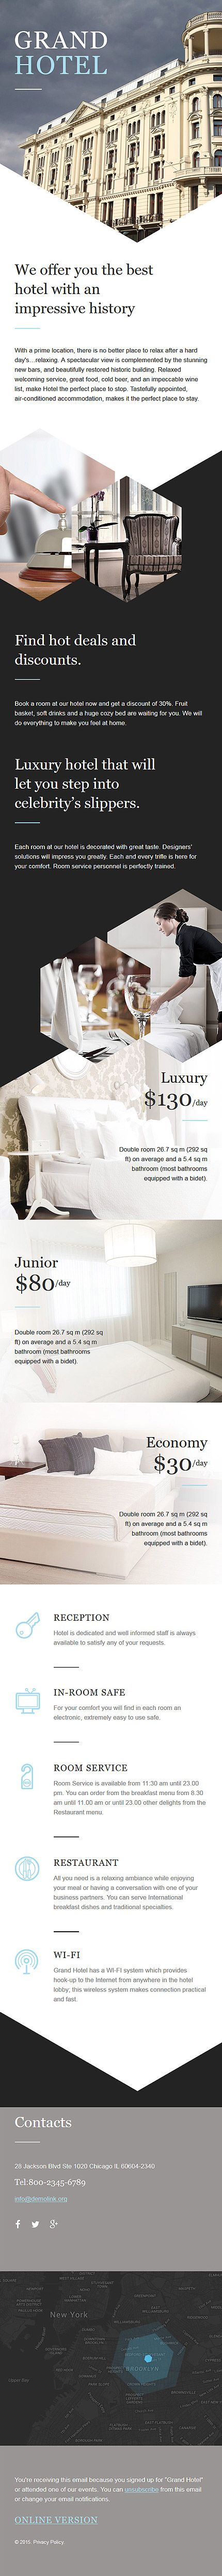 Template 57888 - Grand Hotel  Responsive Newsletter Template